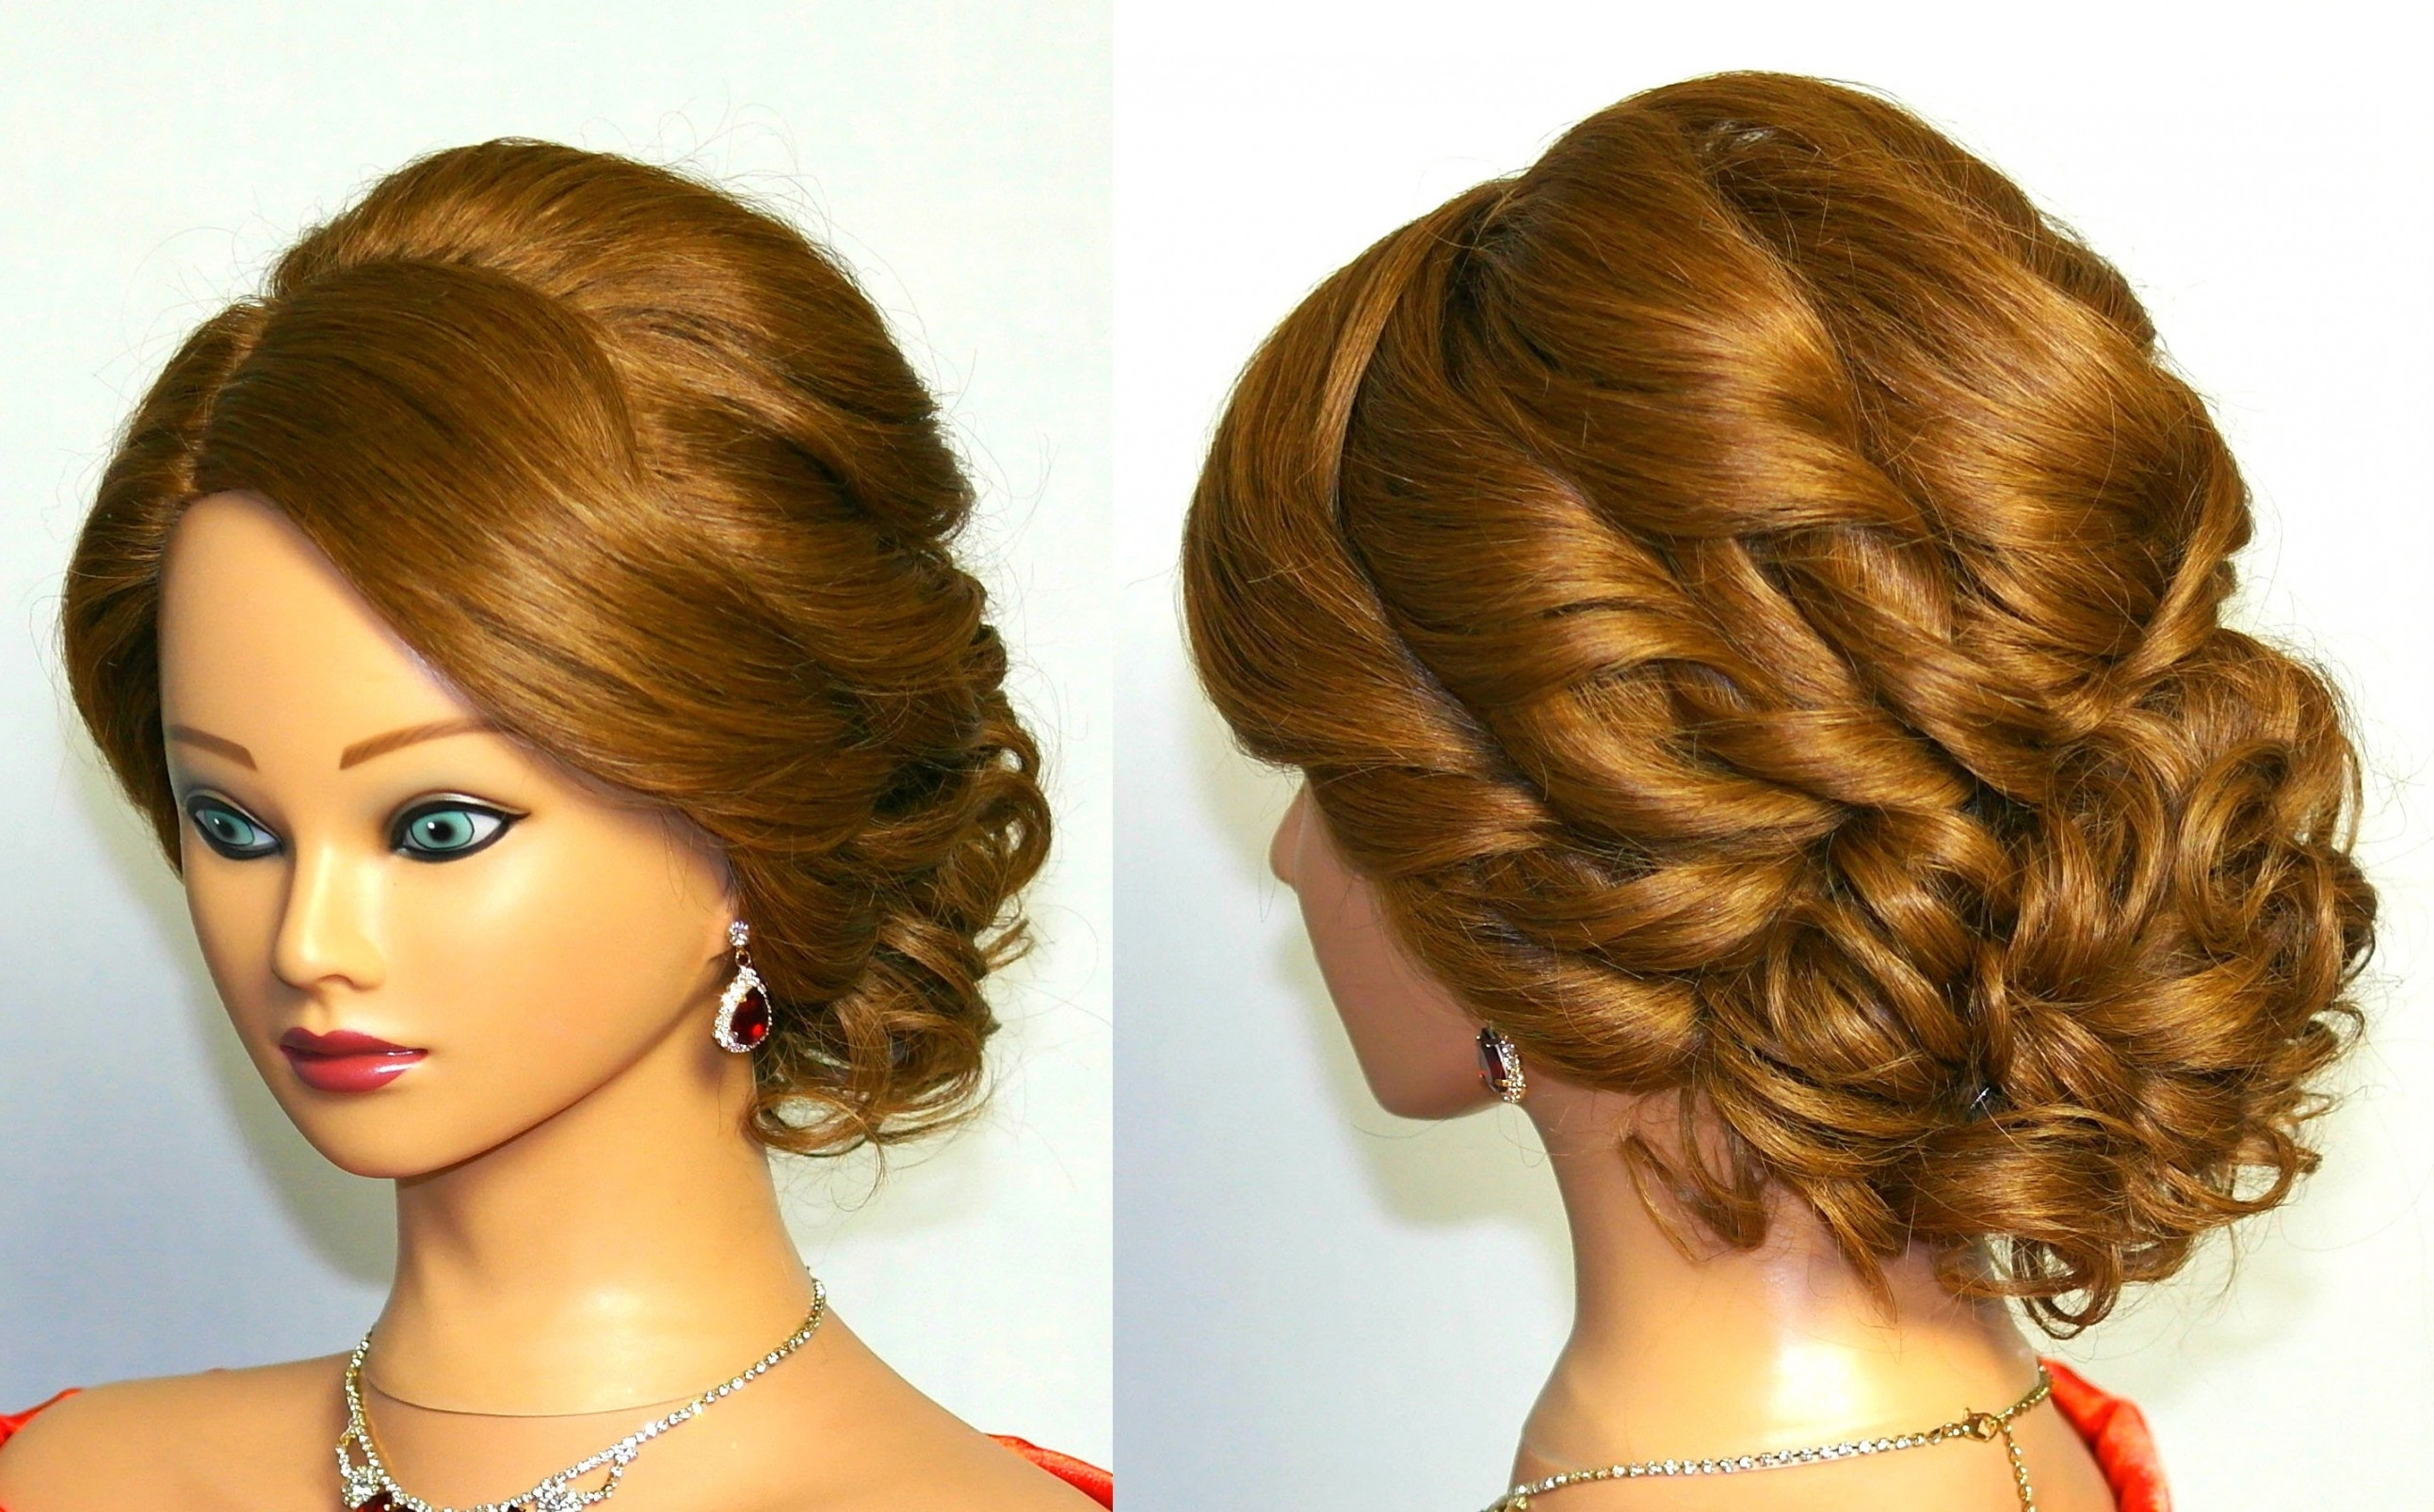 Hair Updo Hairstyles Bridal Curly Updo Hairstyle For Medium Hair With Wavy Hair Updo Hairstyles (View 9 of 15)